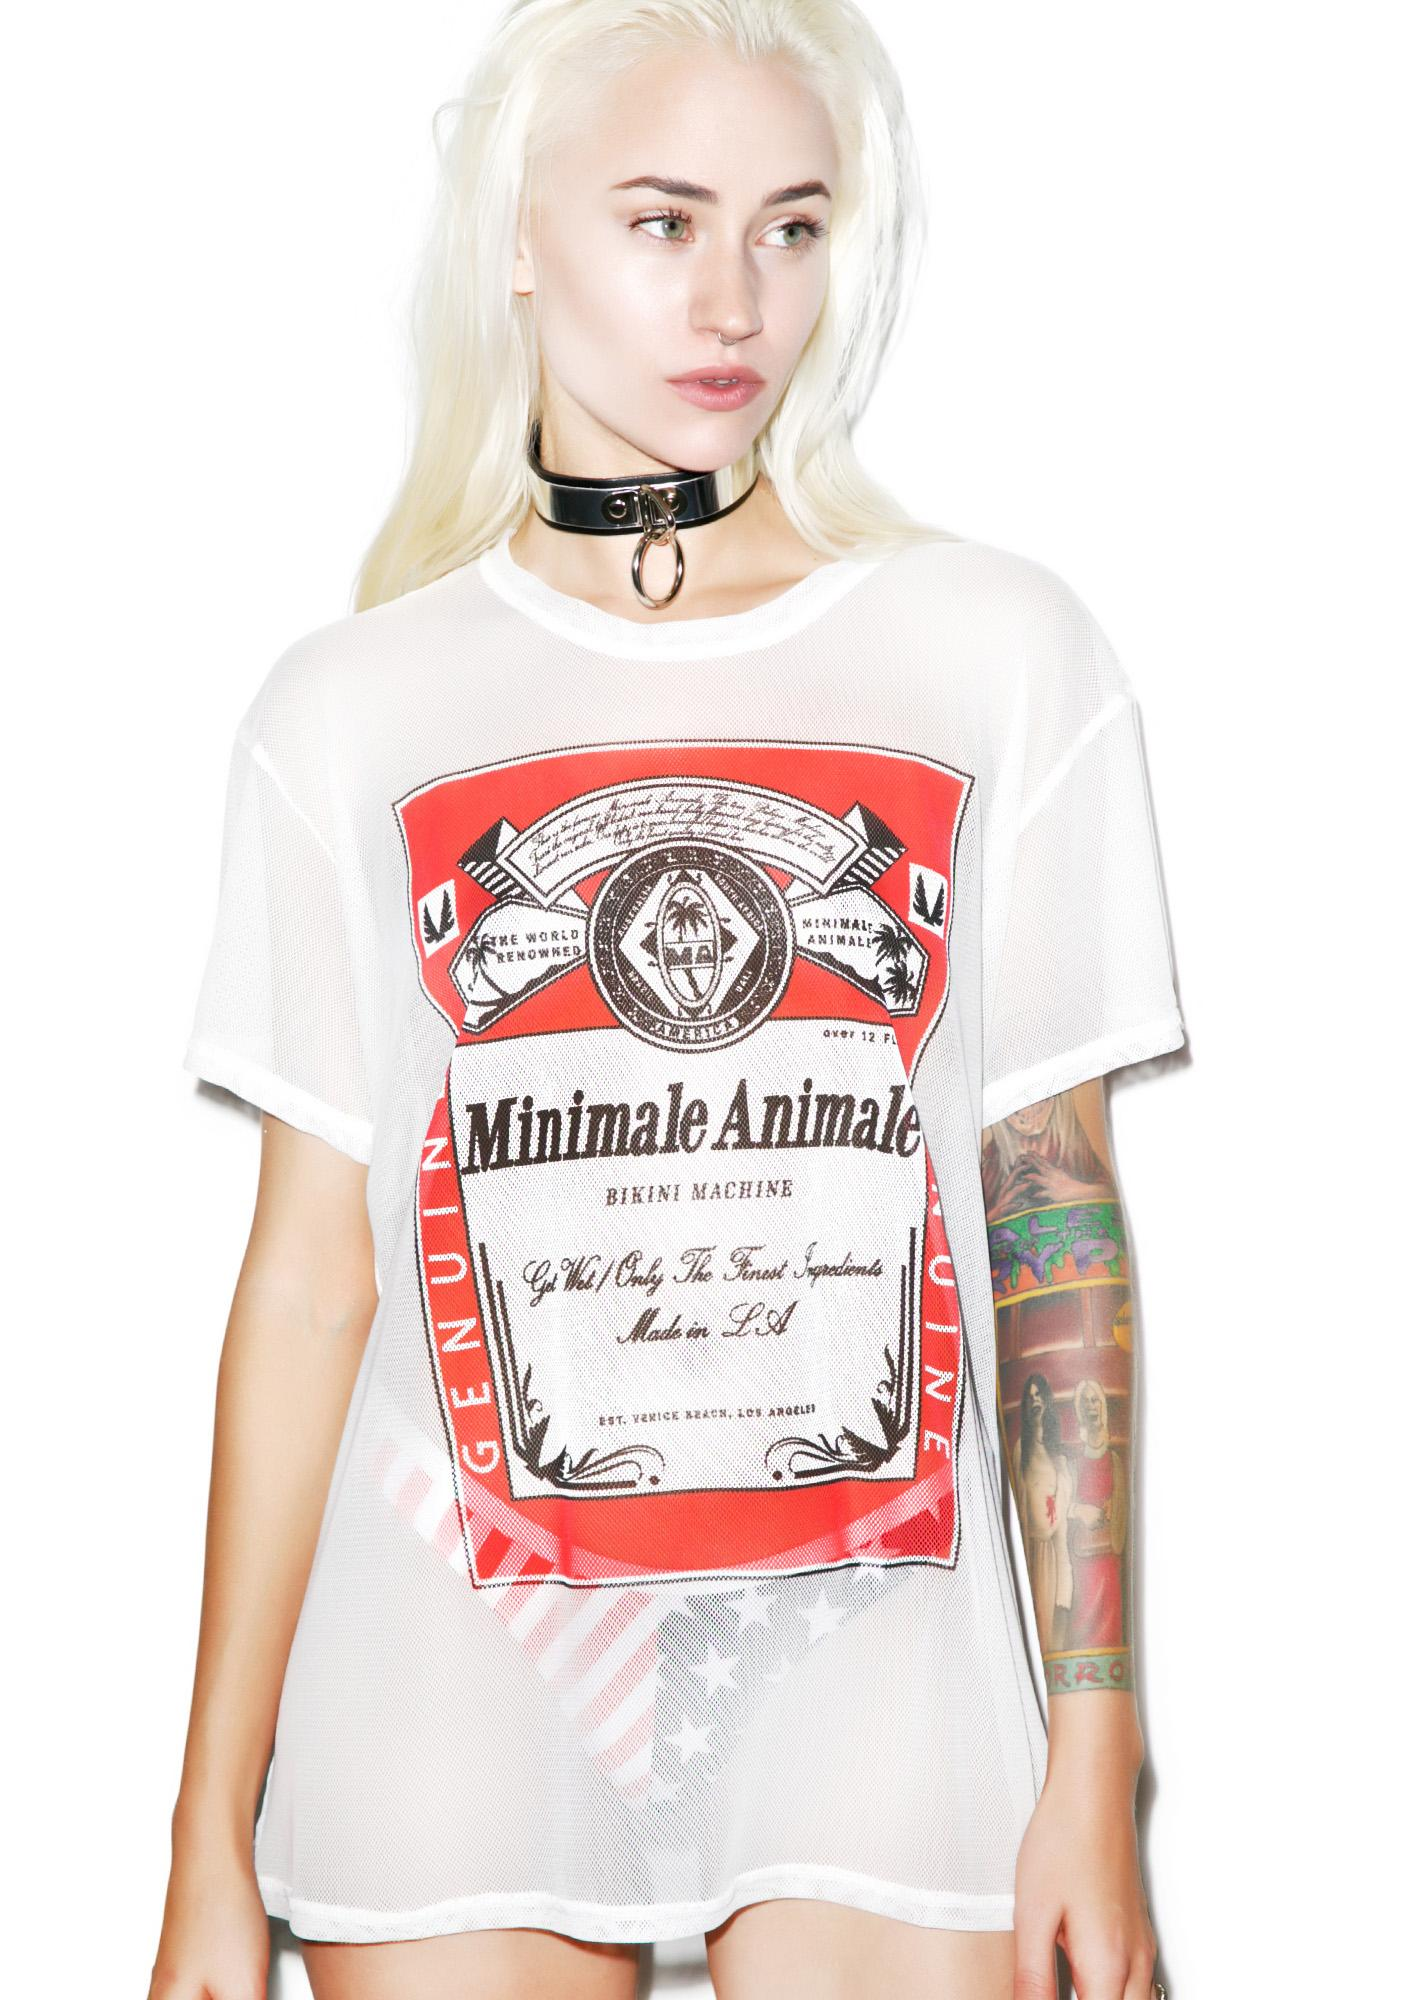 Minimale Animale The Weiser Tee